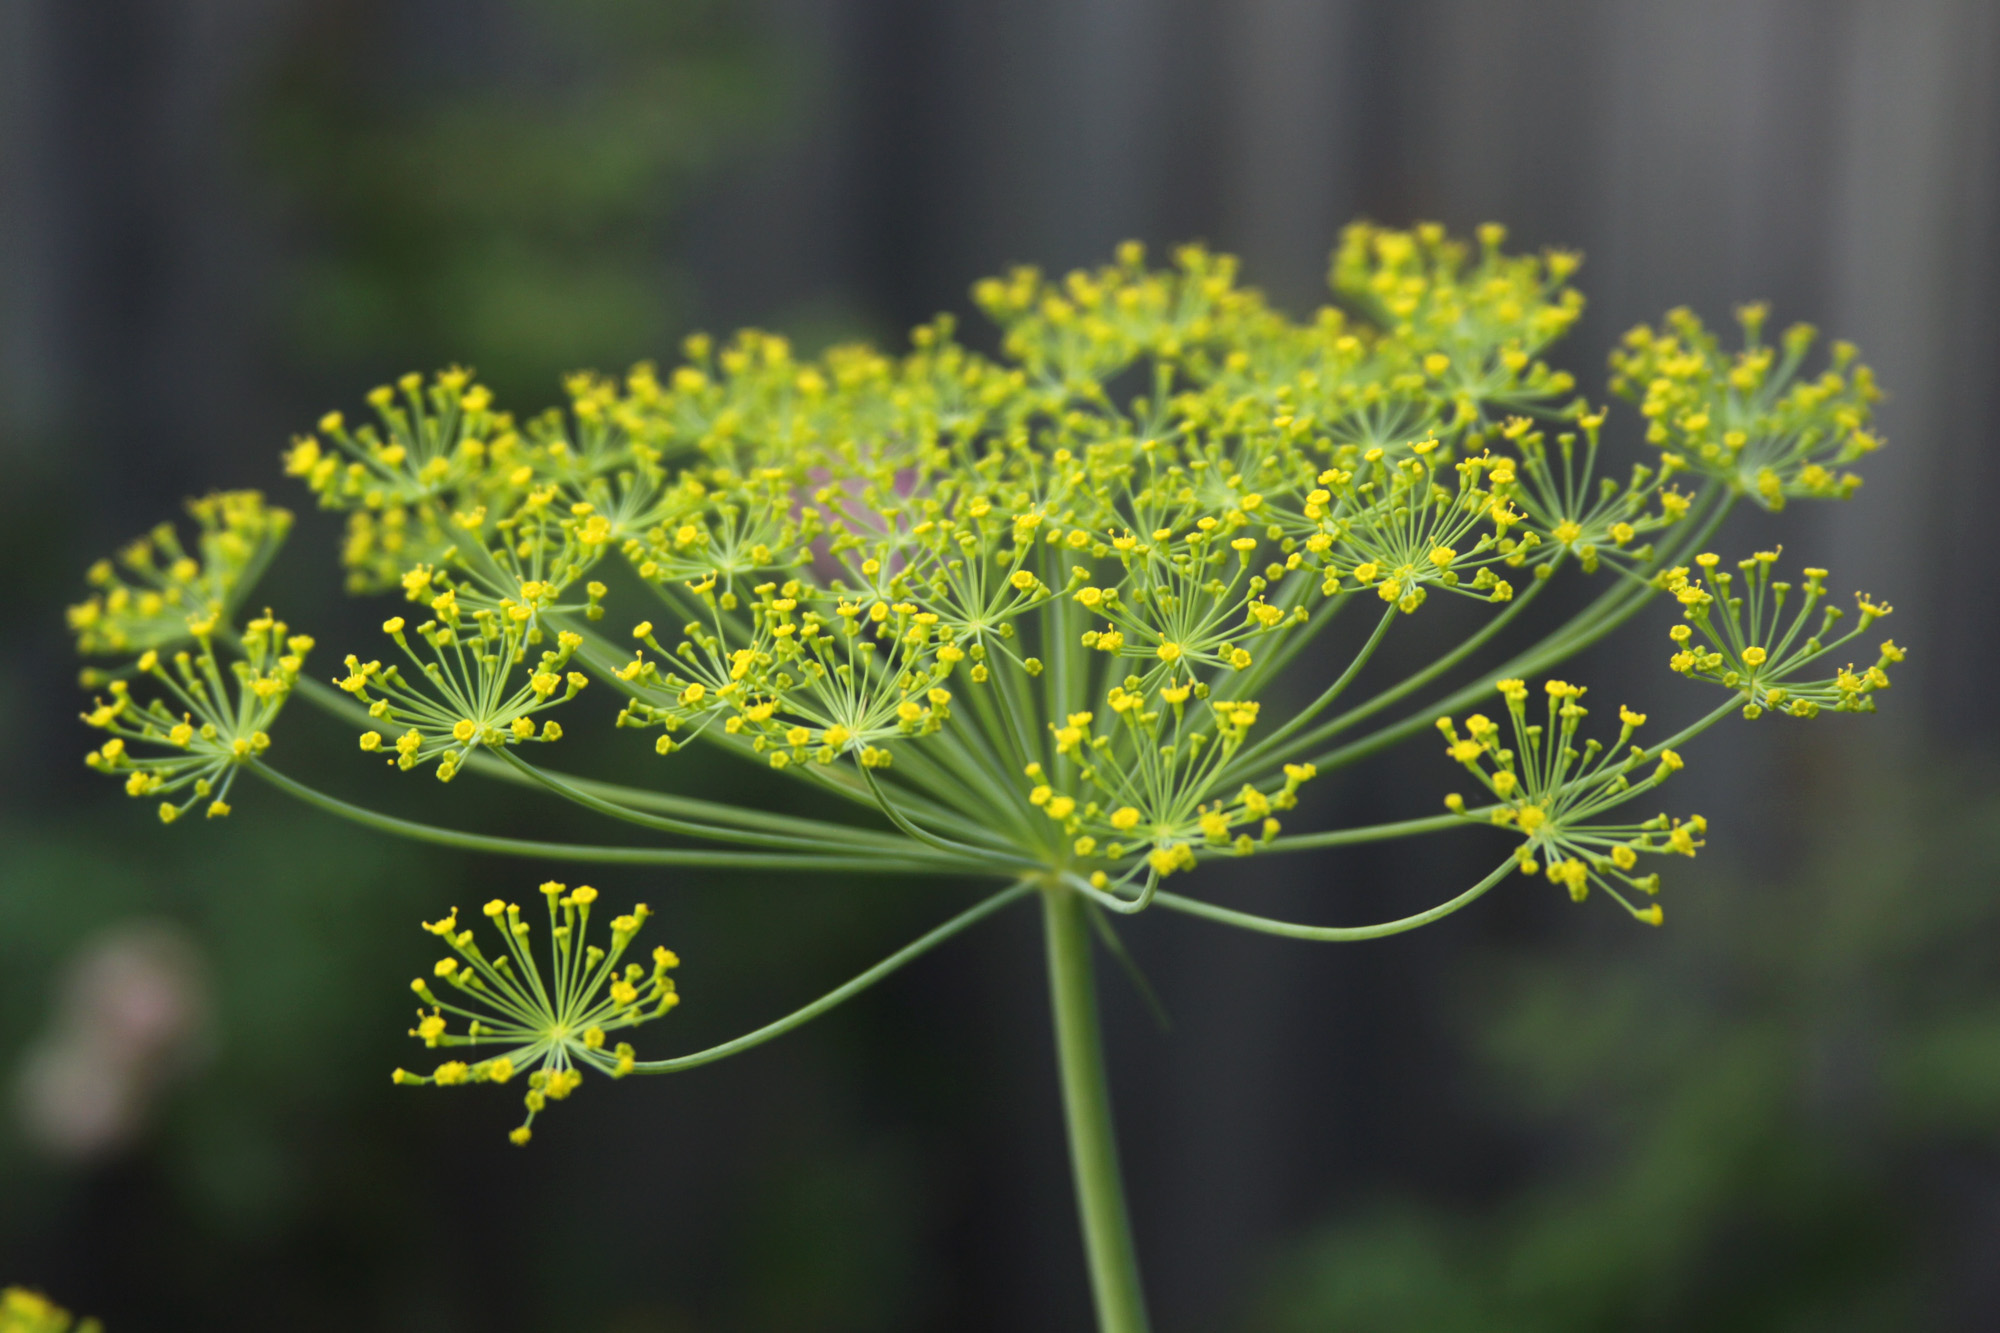 A Dill Flower is Beautiful if You Look Closely